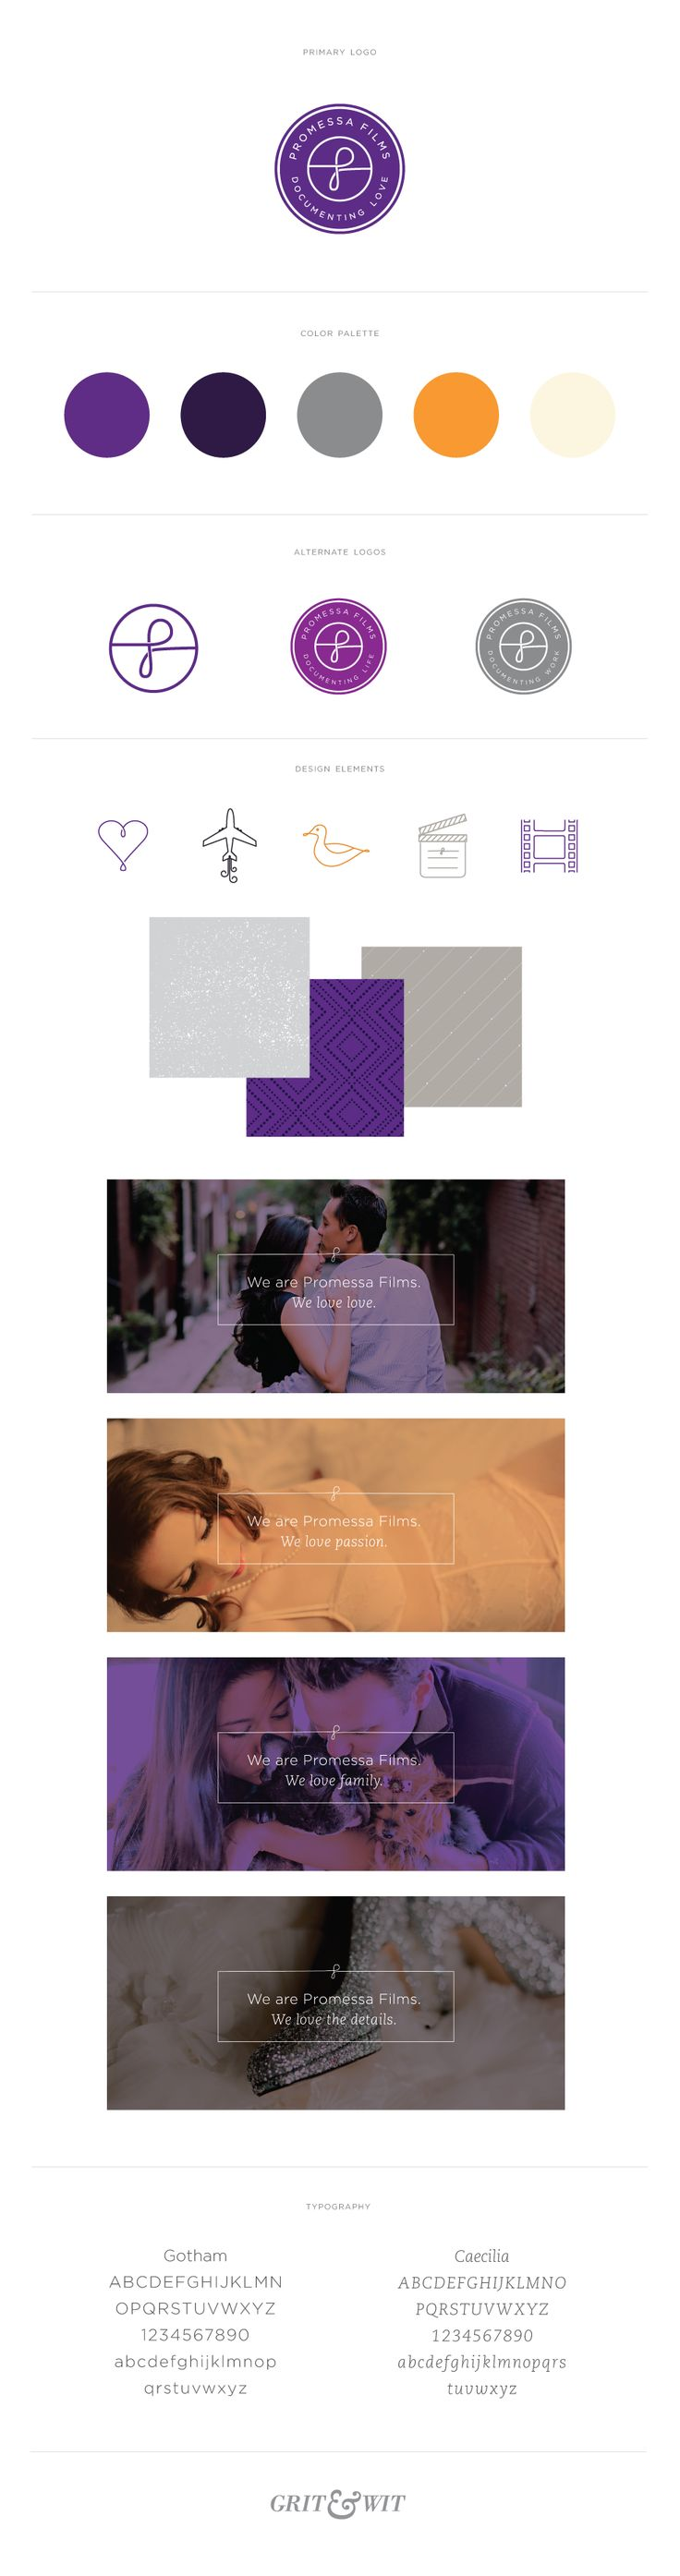 Promessa Films // Grit & Wit // Brand Design for Brave Businesses #branding